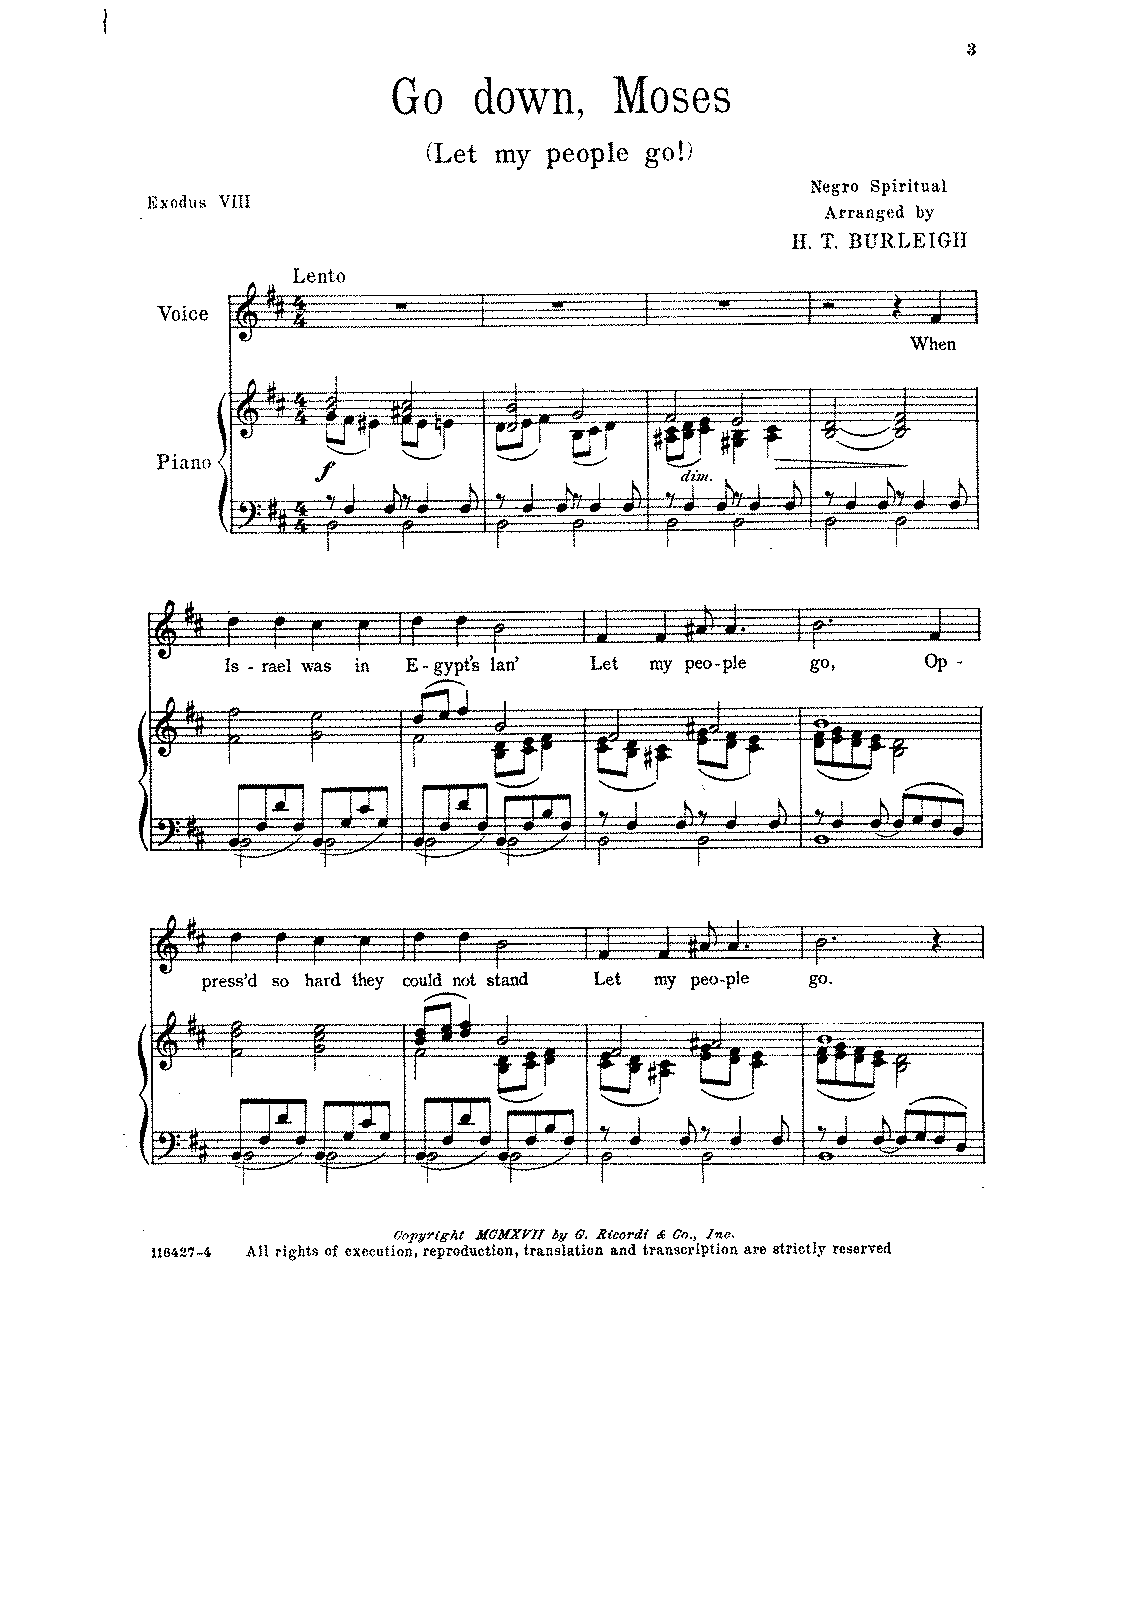 go down moses sheet music